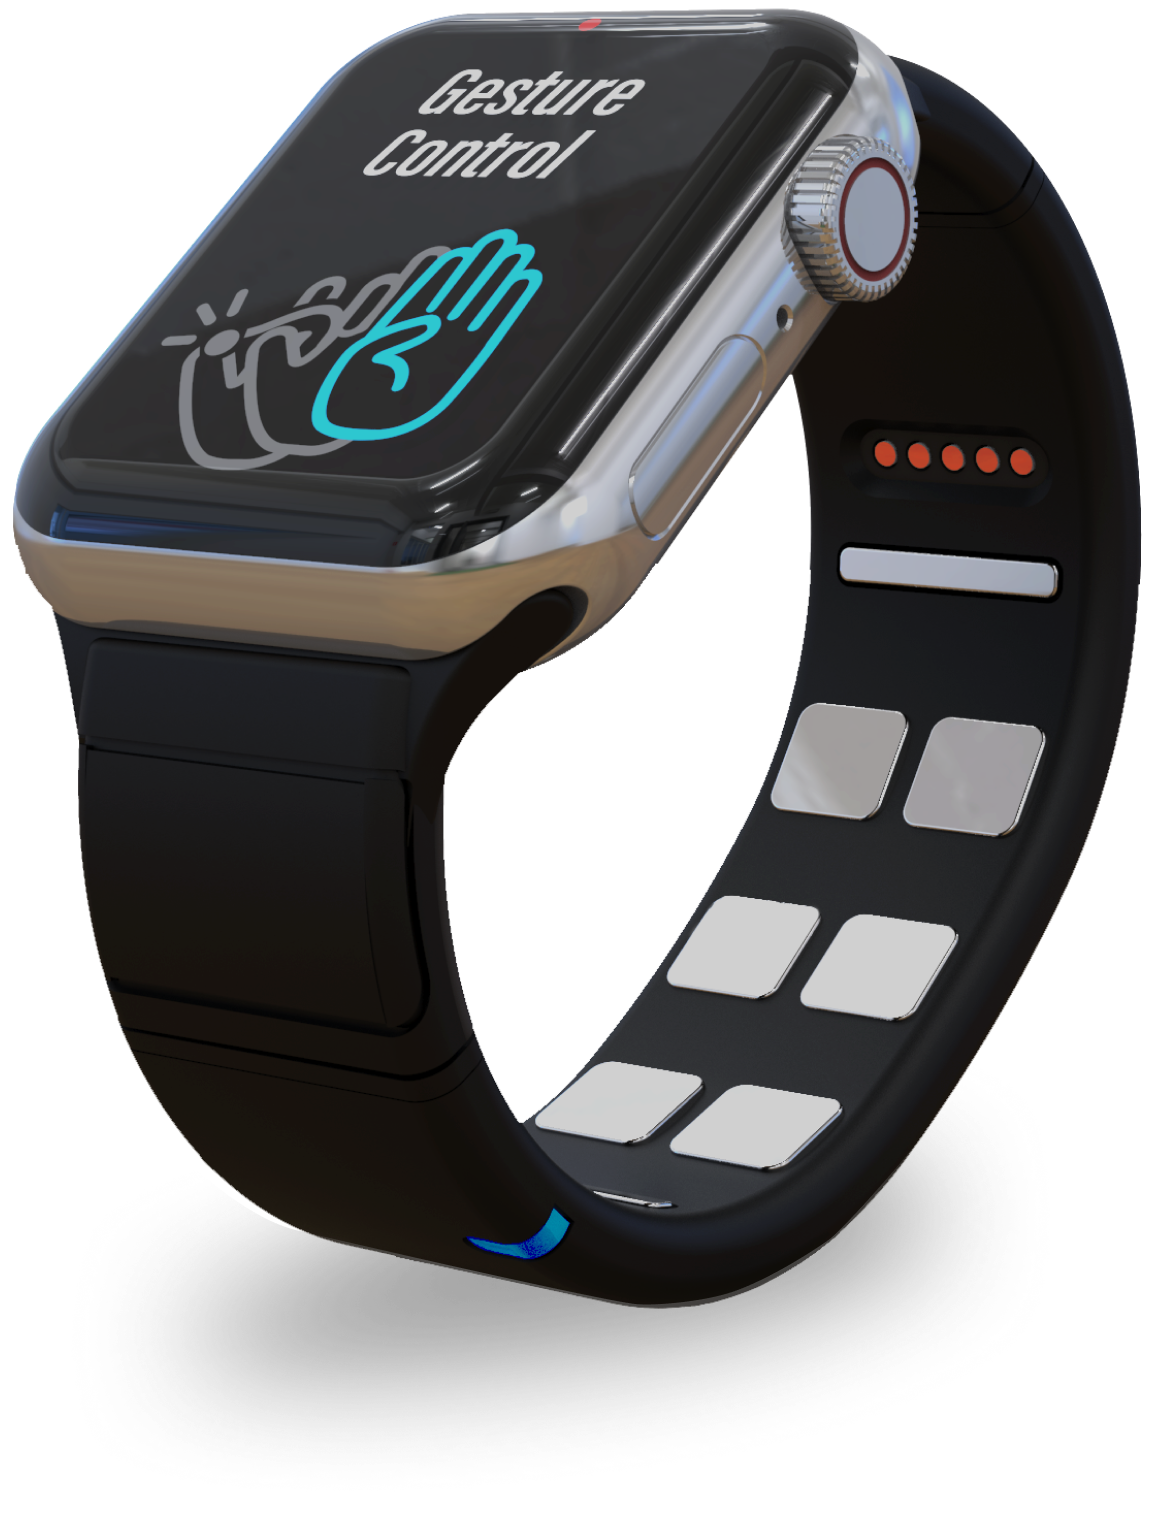 Mudra Band for Apple Watch